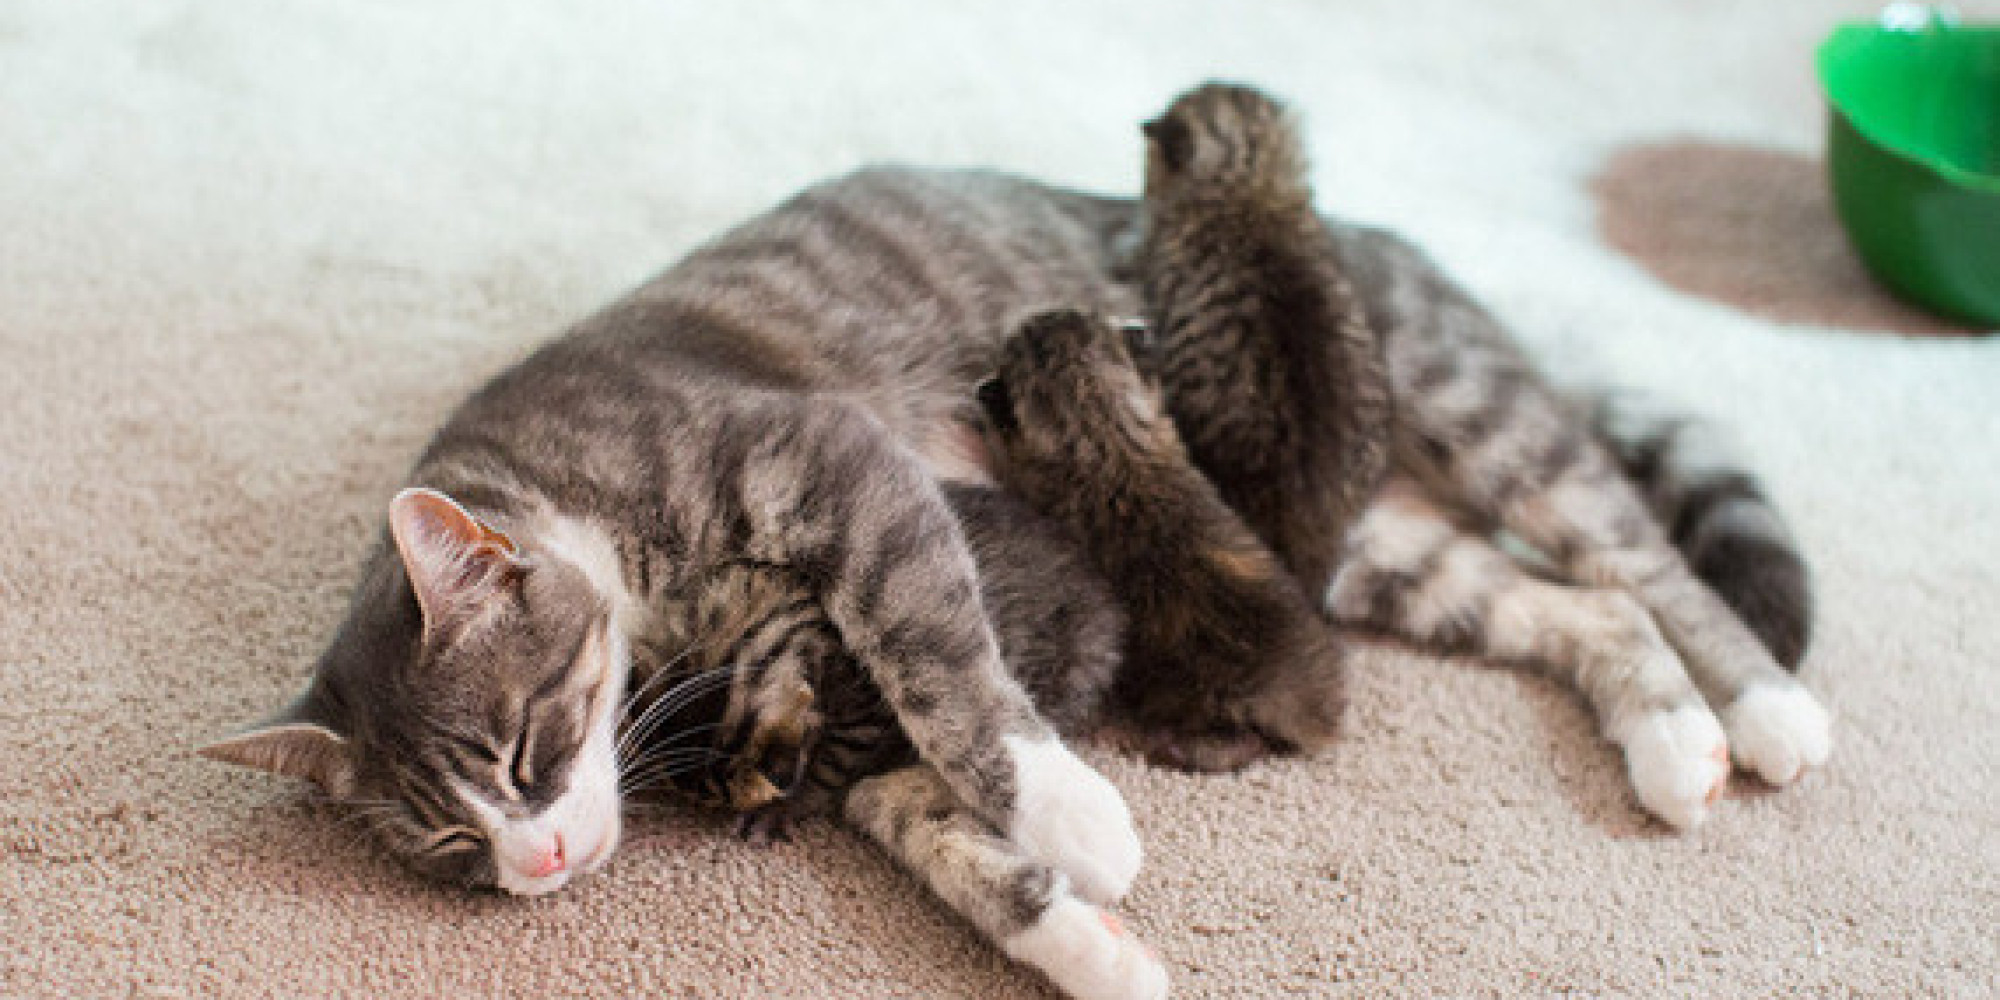 grieving mama cat who lost all three babies matched with three